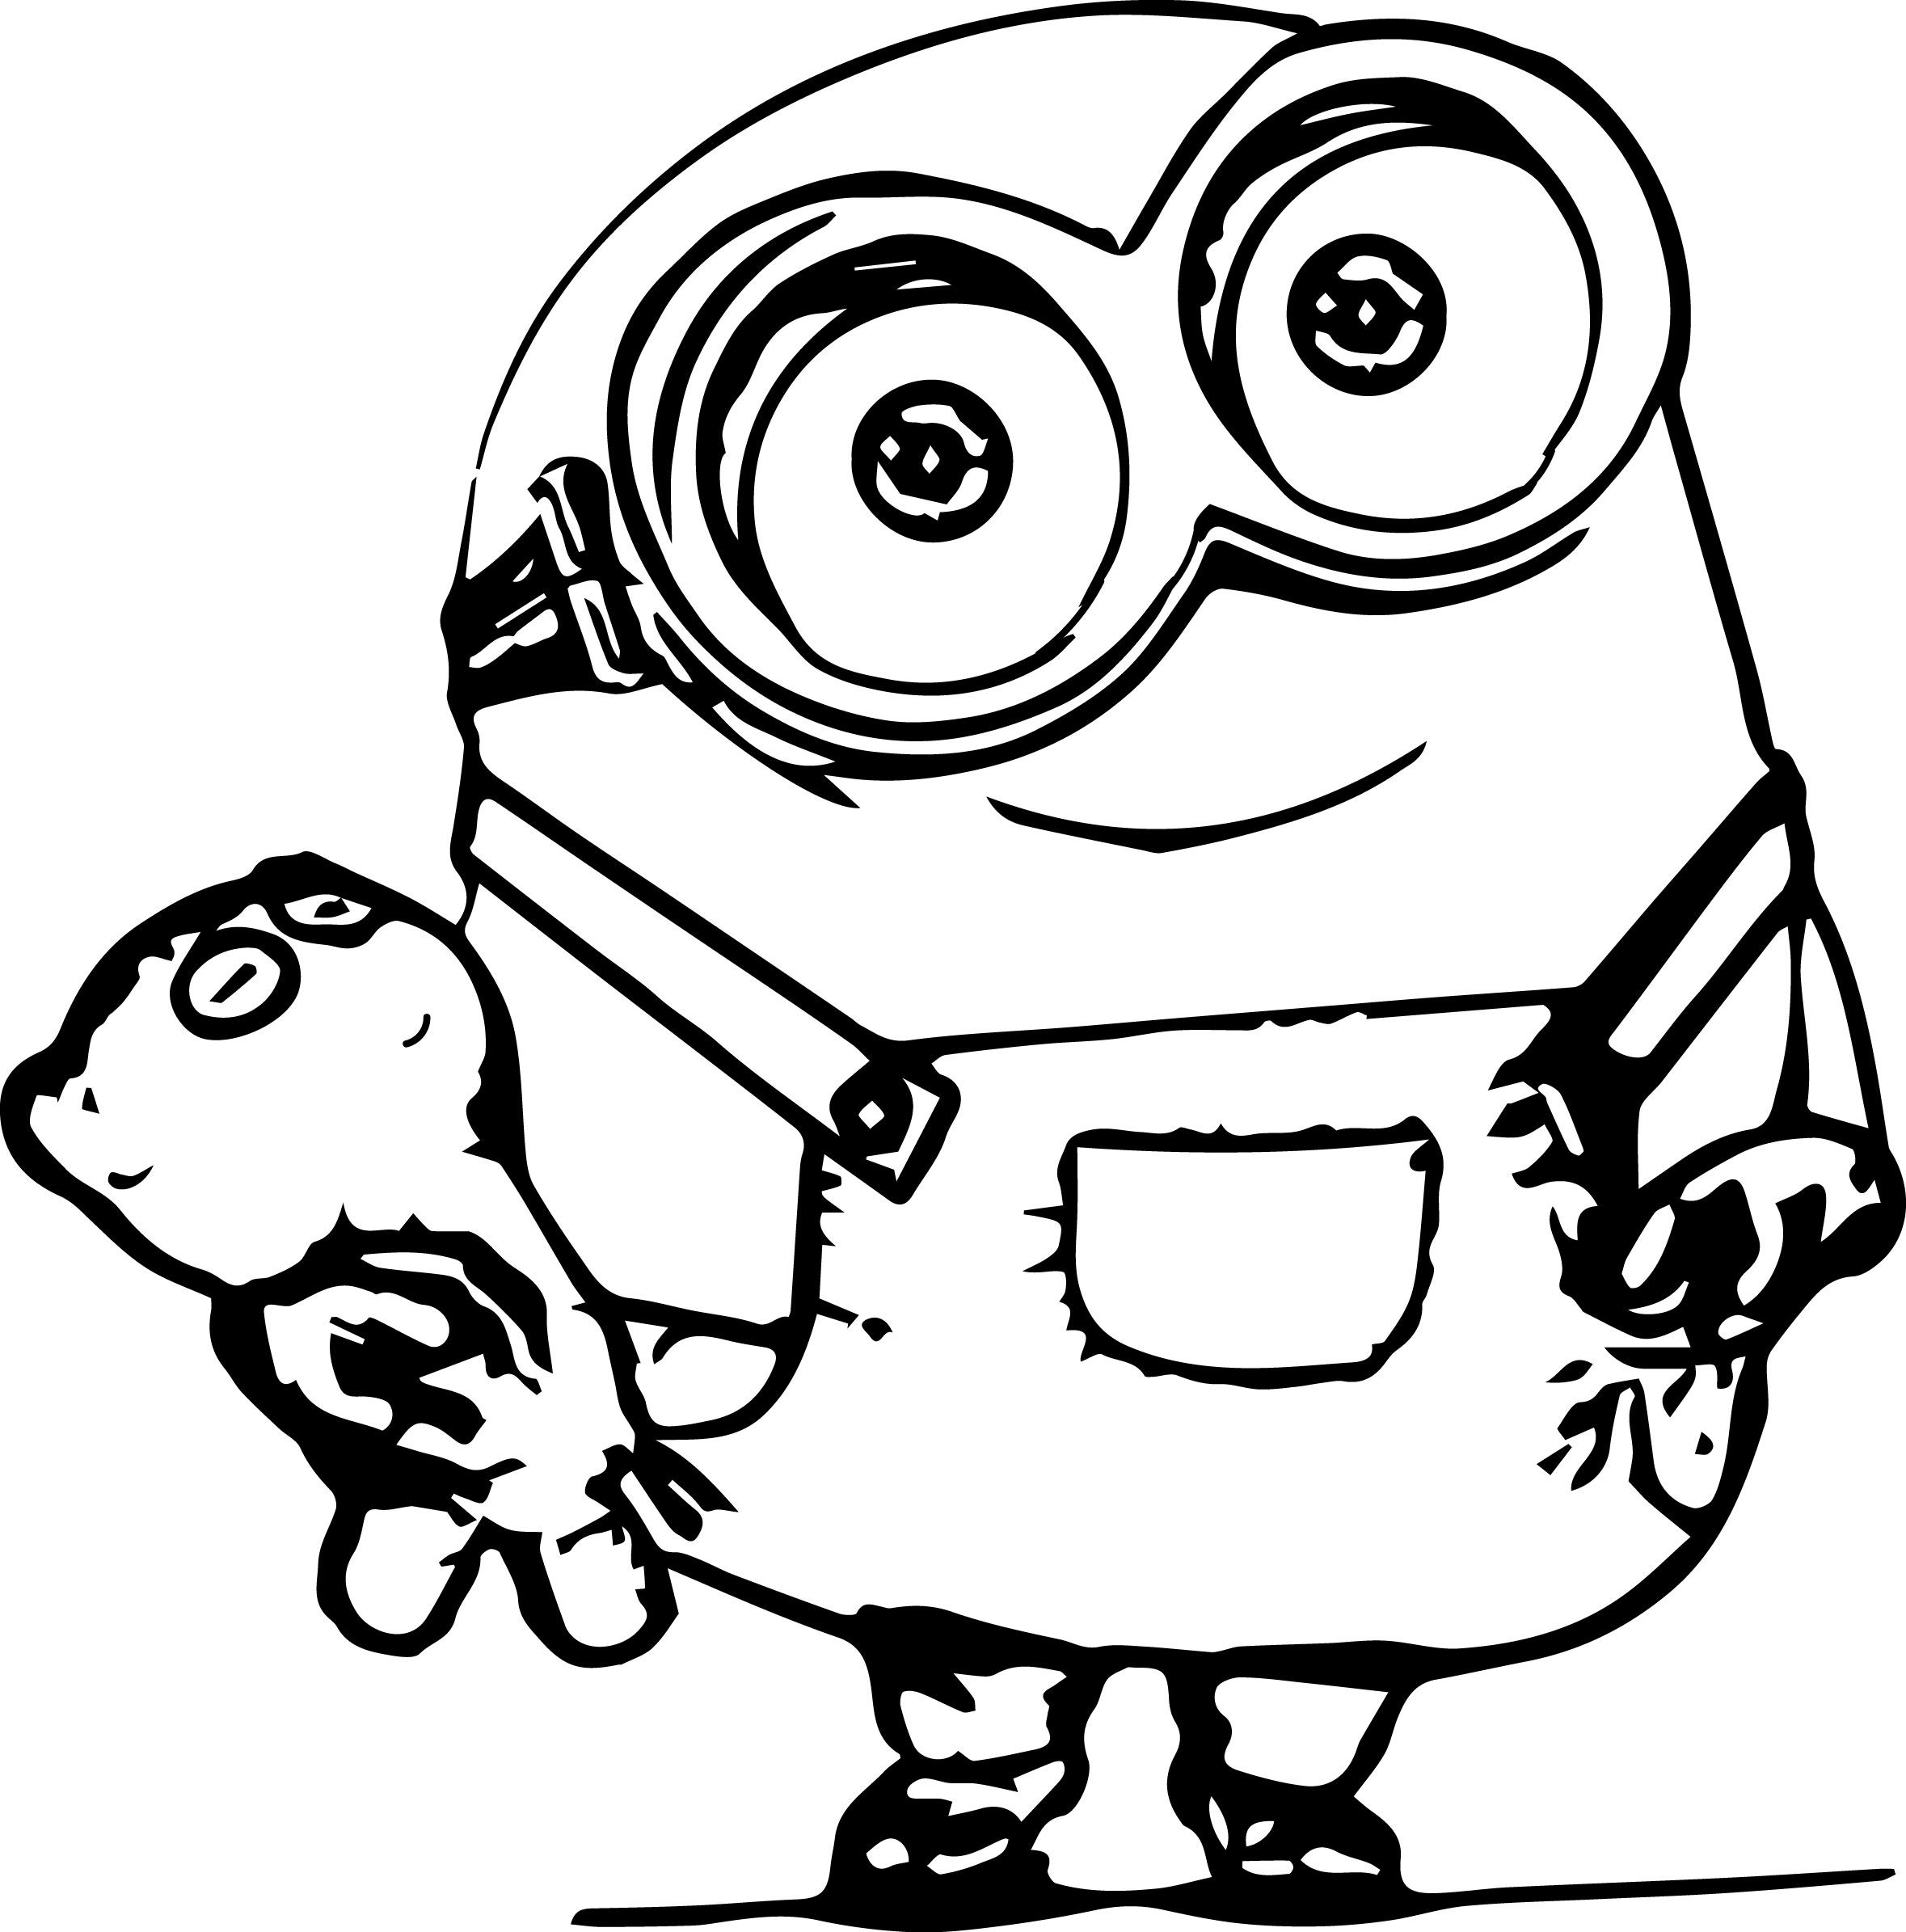 Awesome Minions Coloring Pages Minion Coloring Pages Minions